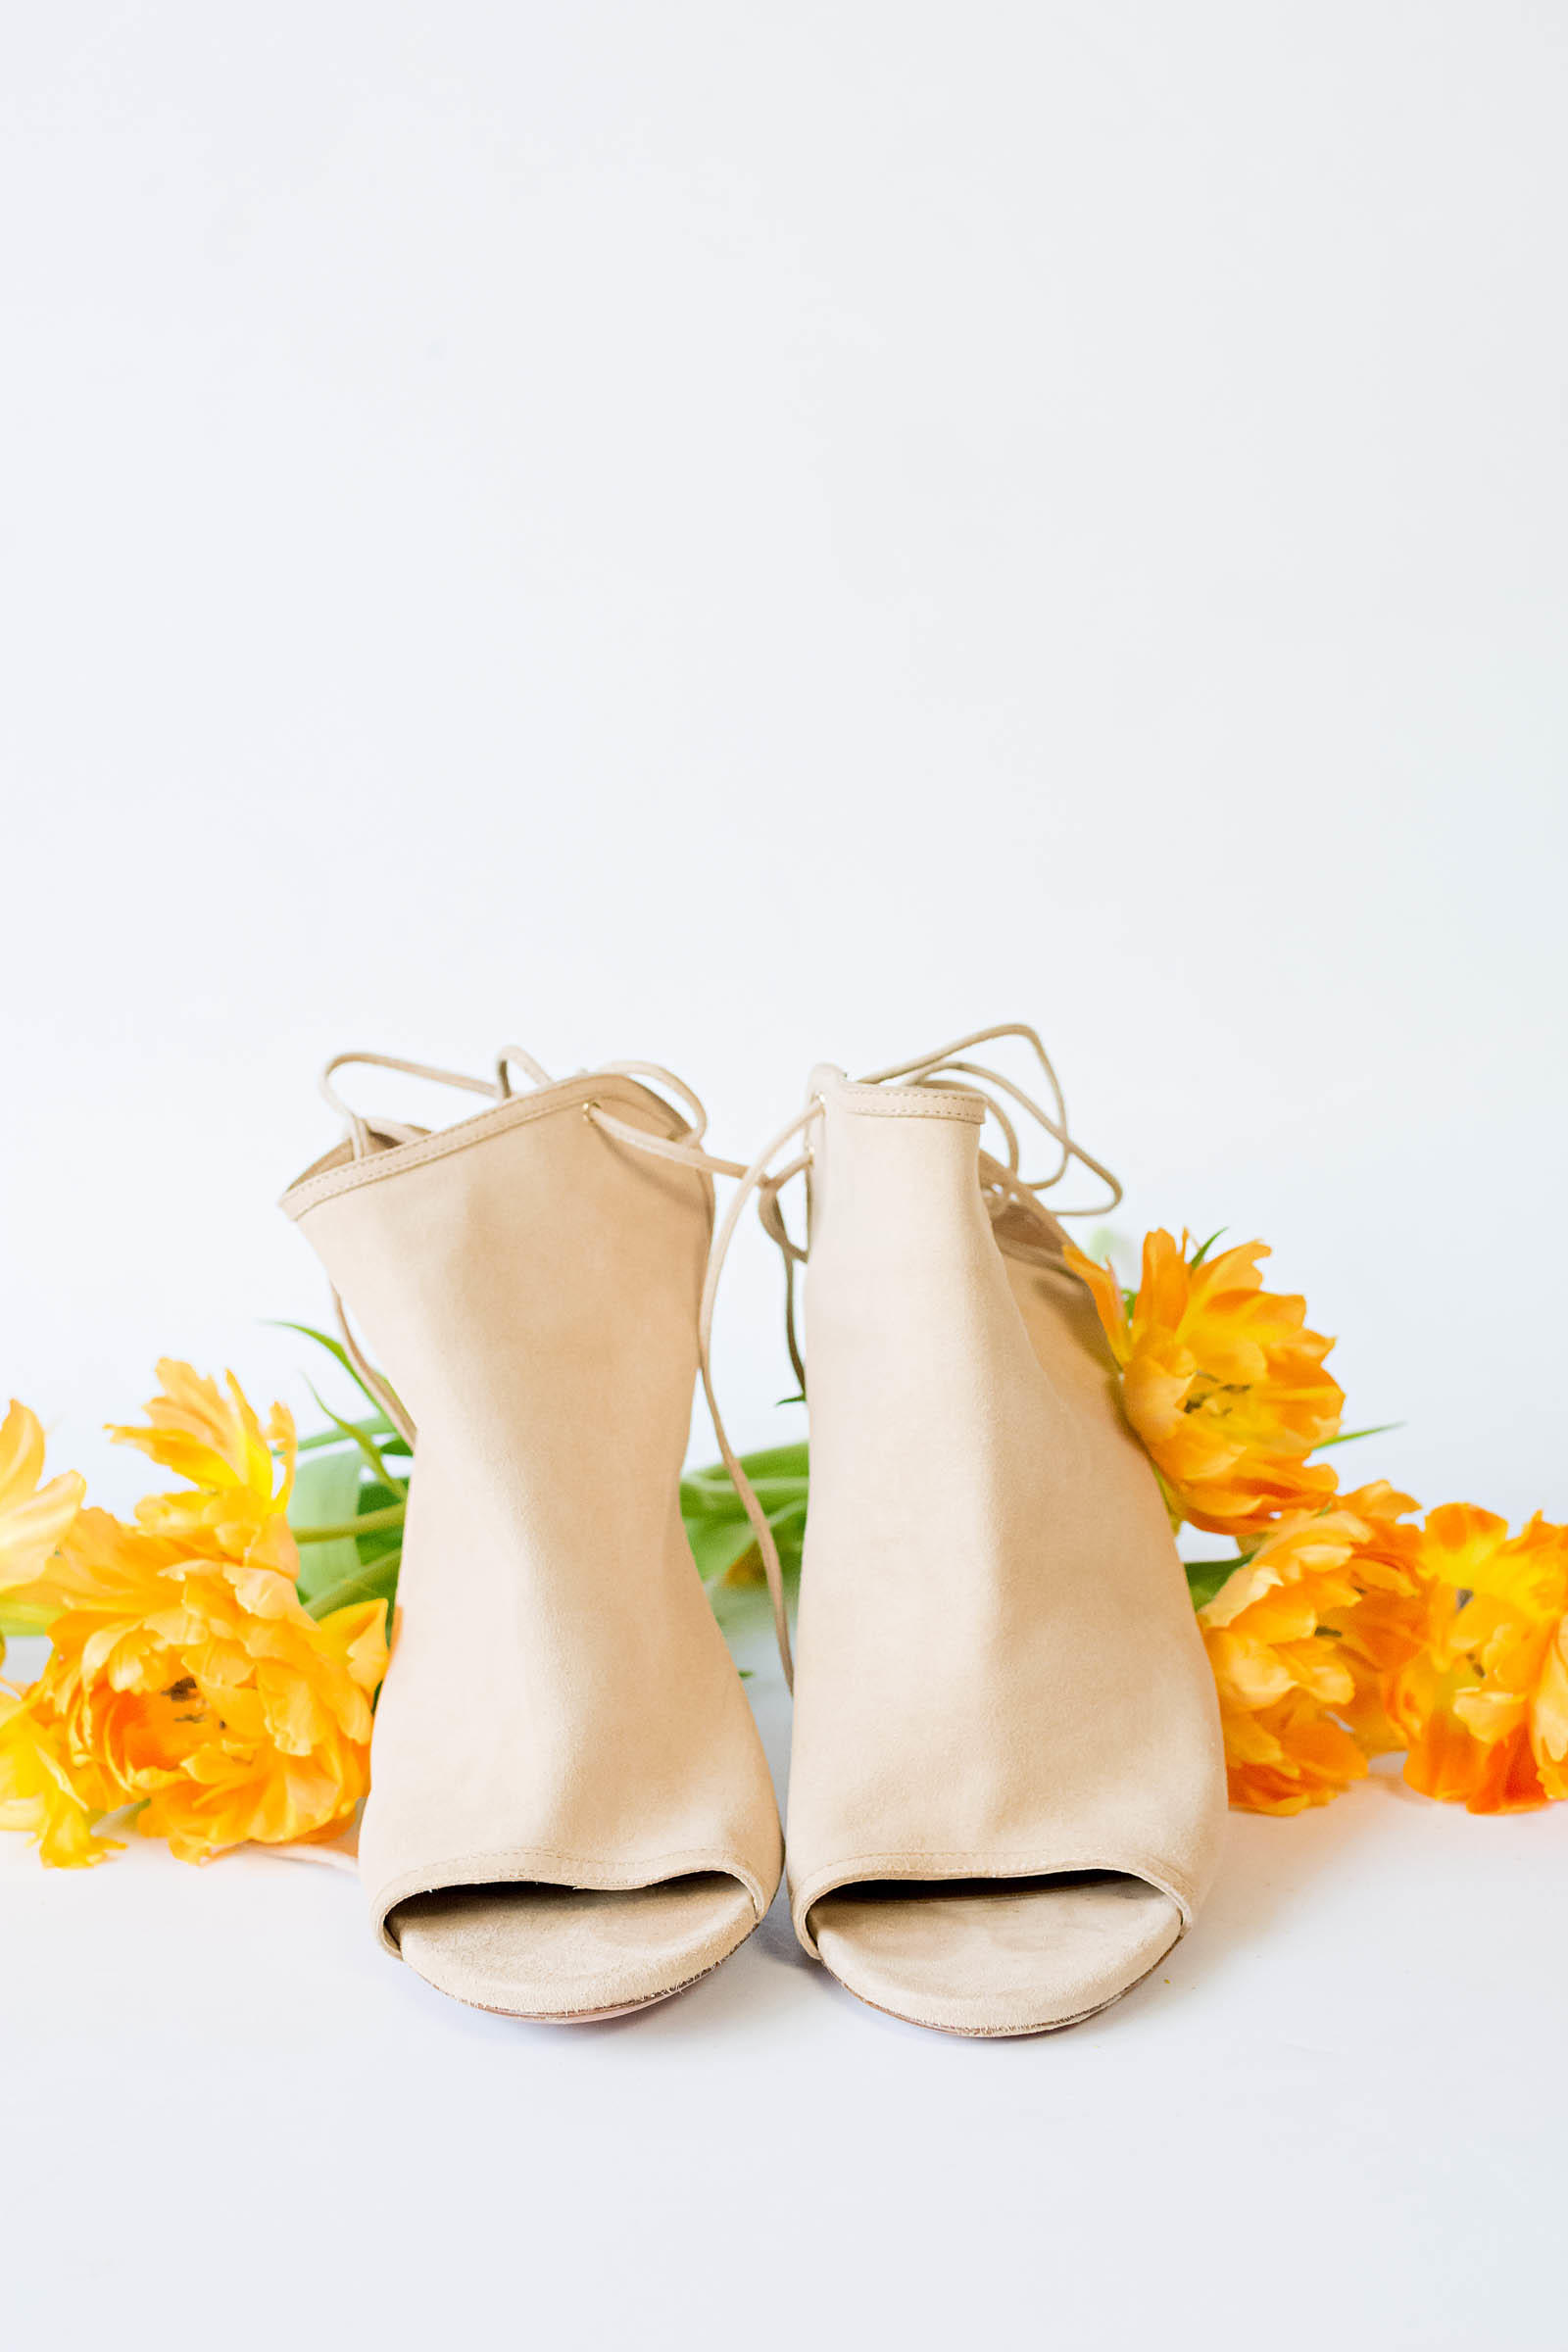 Aquazzura Mayfair Booties in Nude Suede